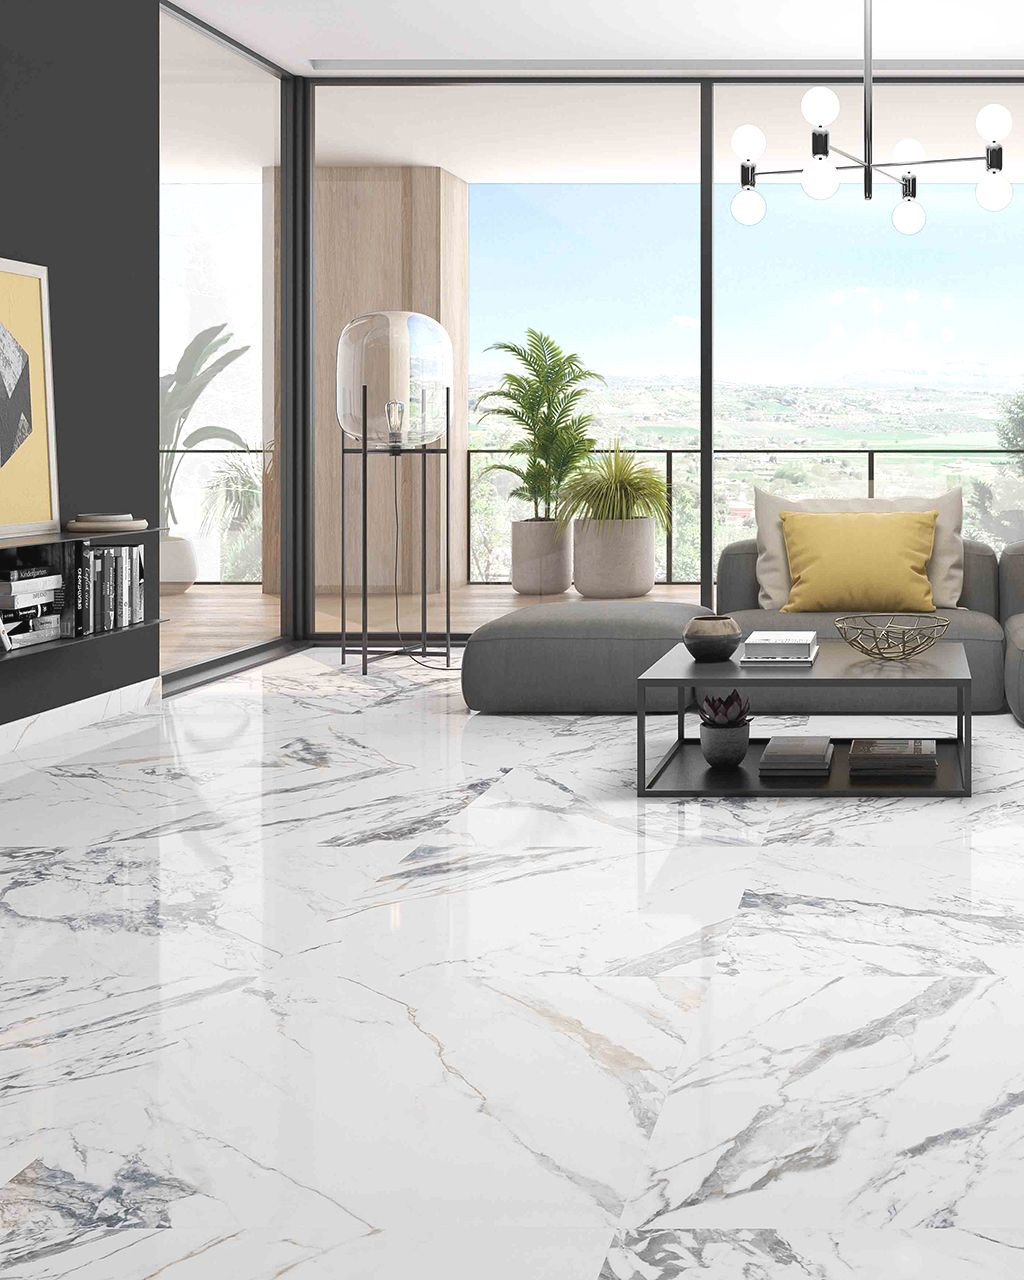 A living room floor with our Tinenza Pulido 12 x 24 Rectified Porcelain Tile